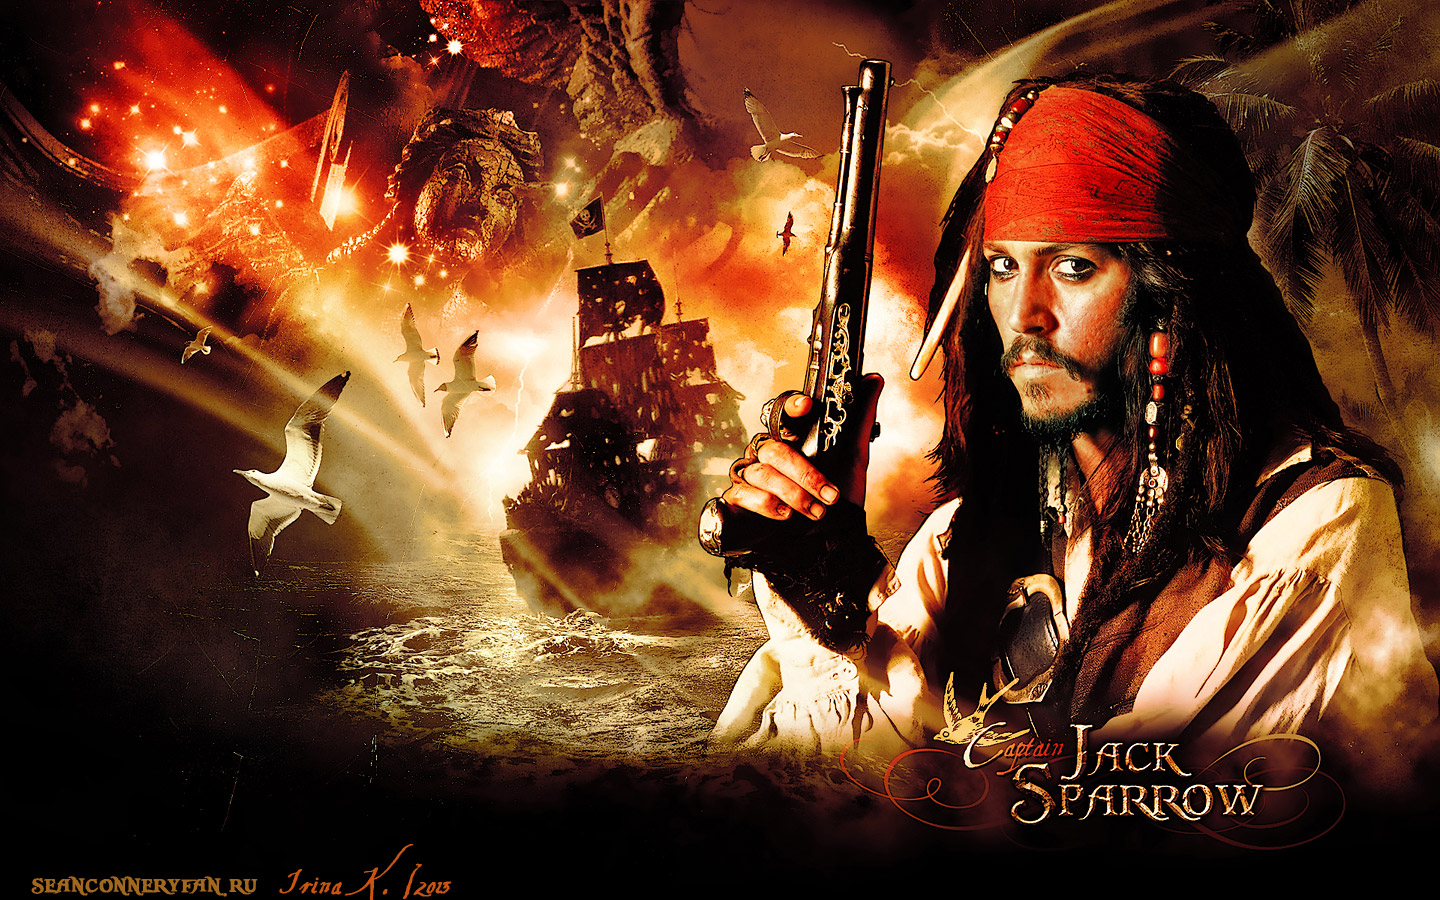 Captain jack sparrow wallpaper by bormoglot on deviantart captain jack sparrow wallpaper by bormoglot captain jack sparrow wallpaper by bormoglot altavistaventures Image collections